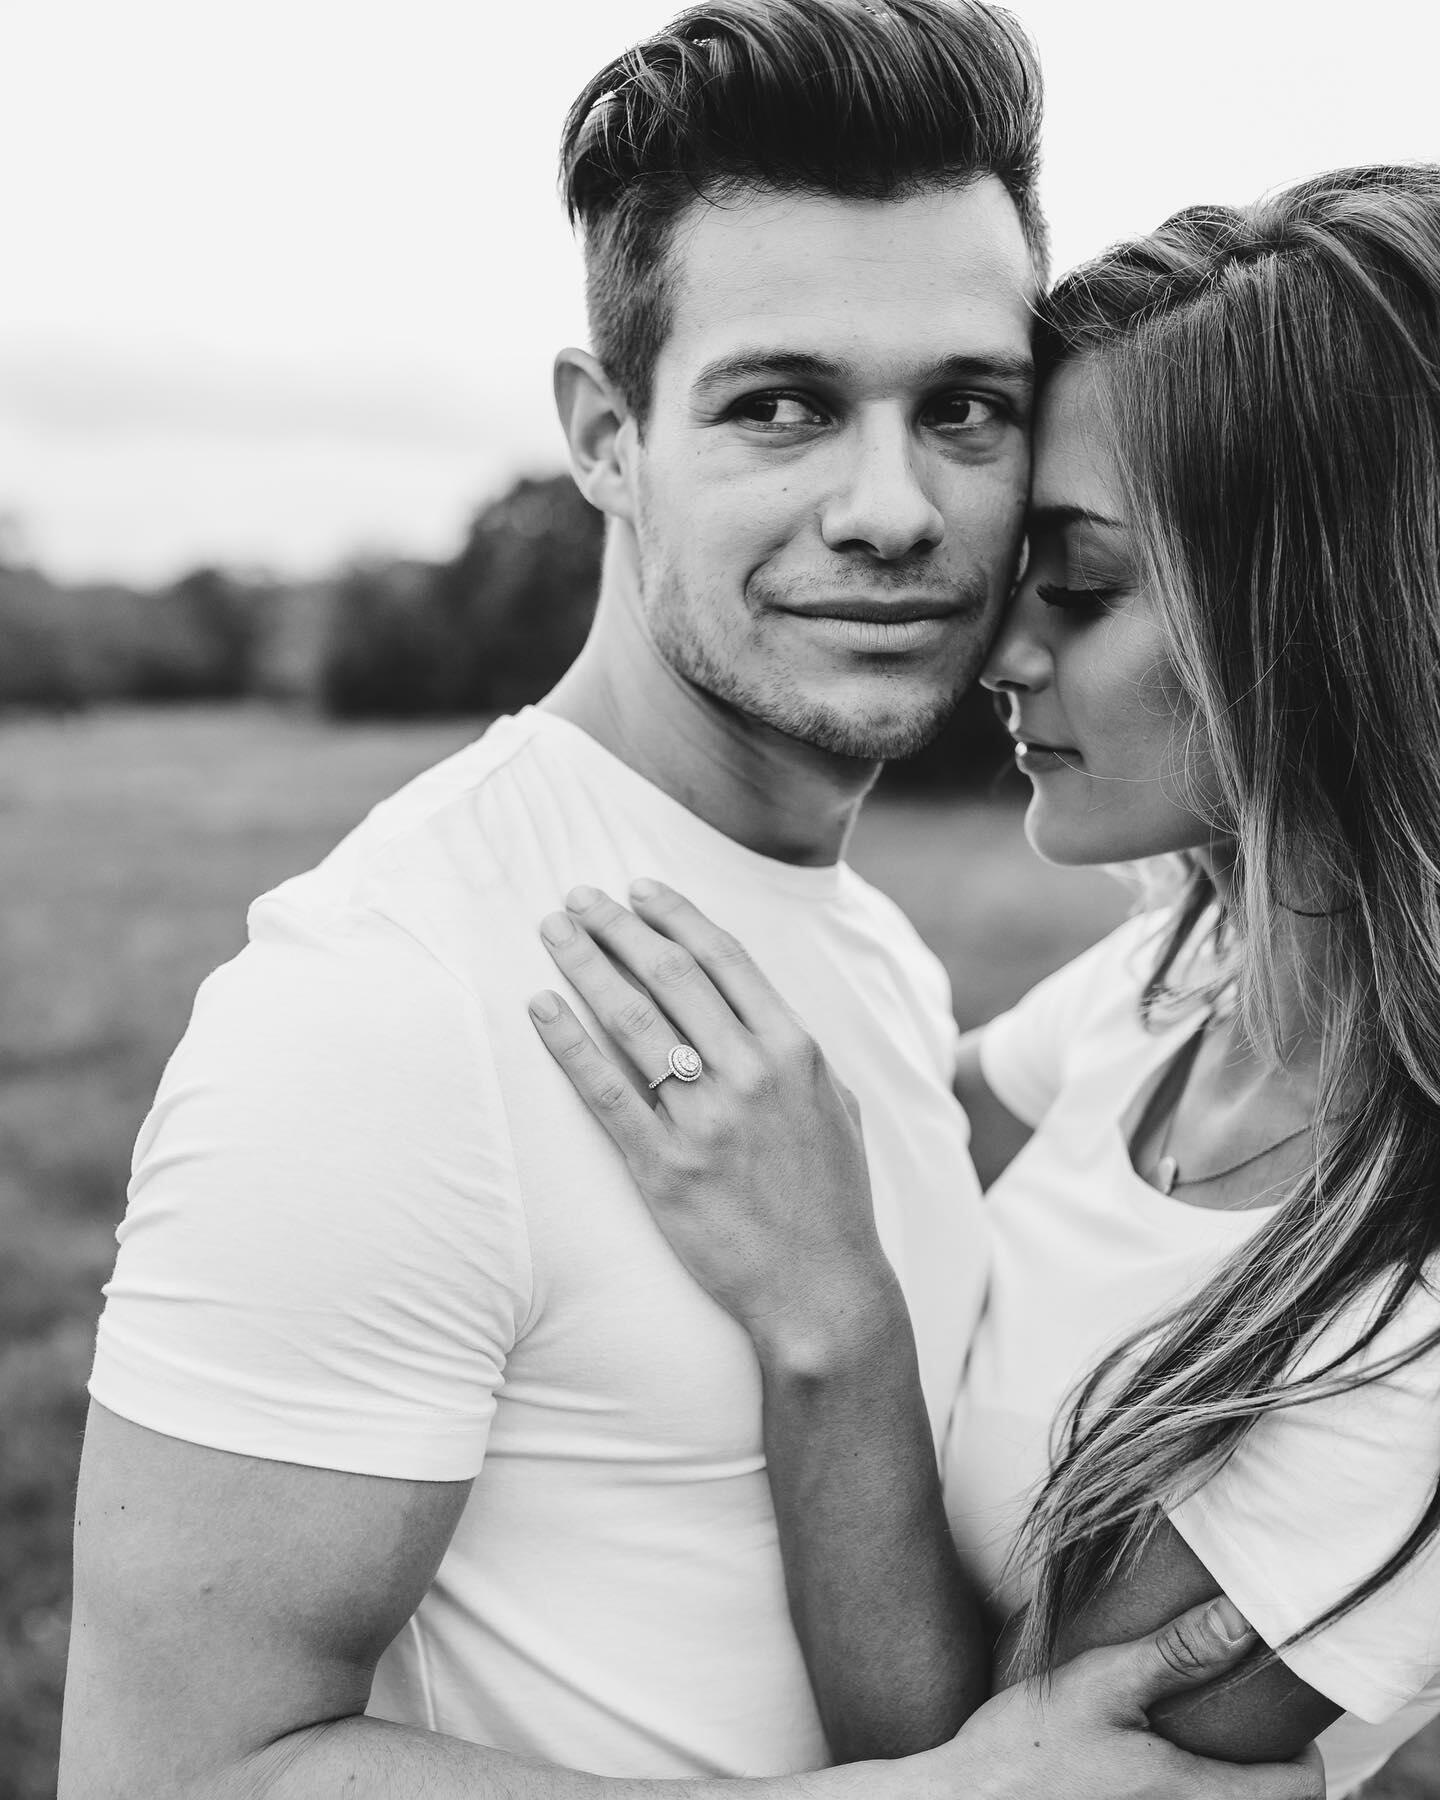 Black and white portrait of a couple holding each other with the girl resting her hand on the guy's chest